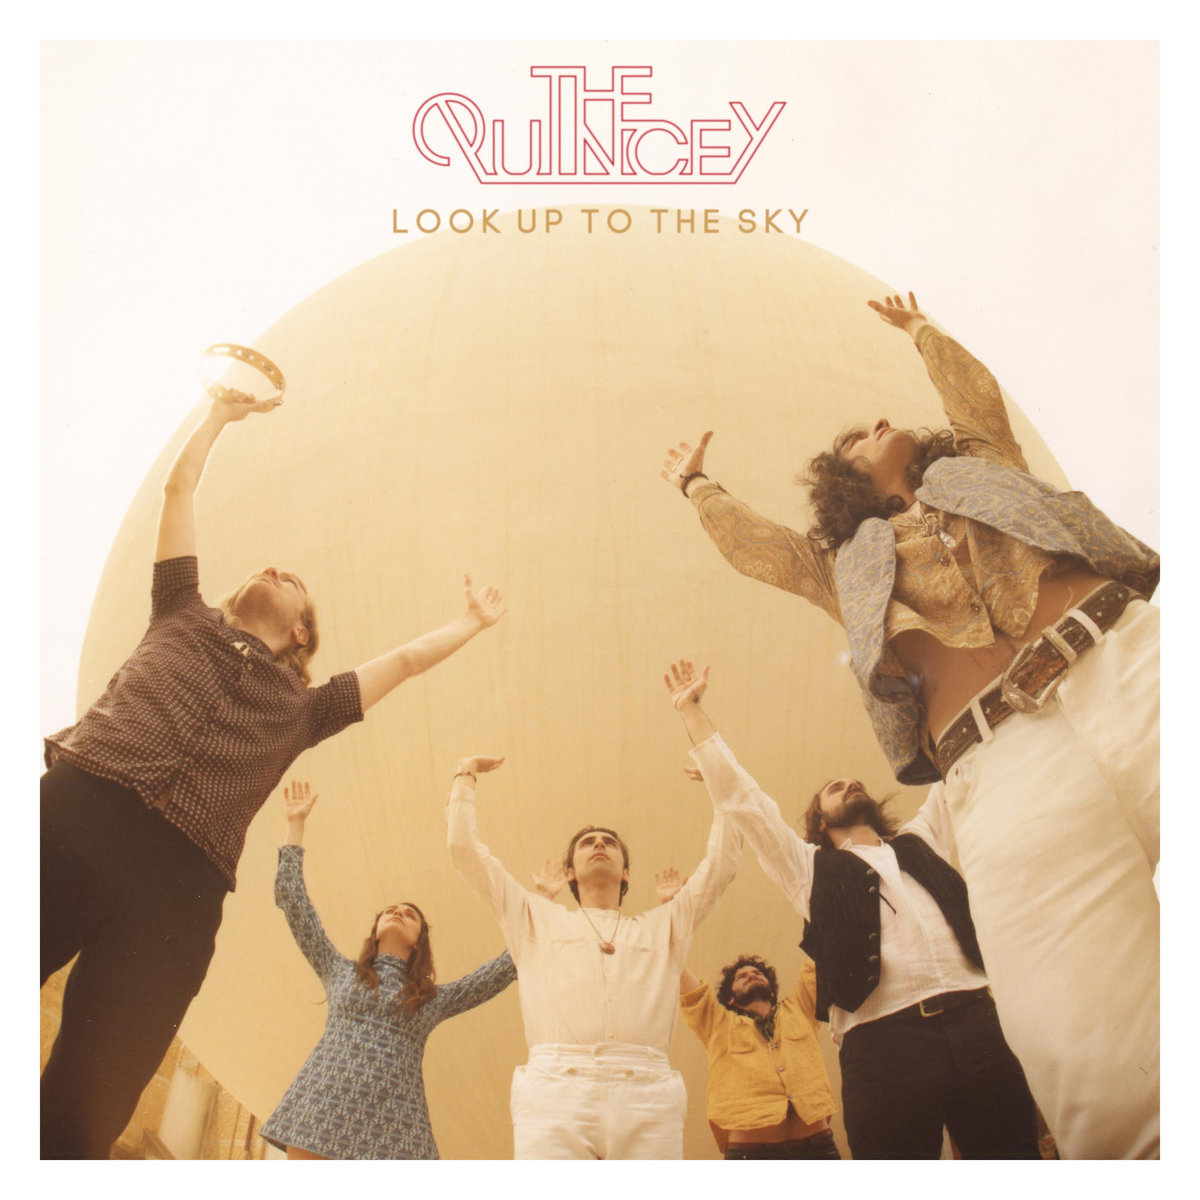 The Quincey - Ride To The Stars @ 'Look Up To The Sky' album (alternative, united kingdom)